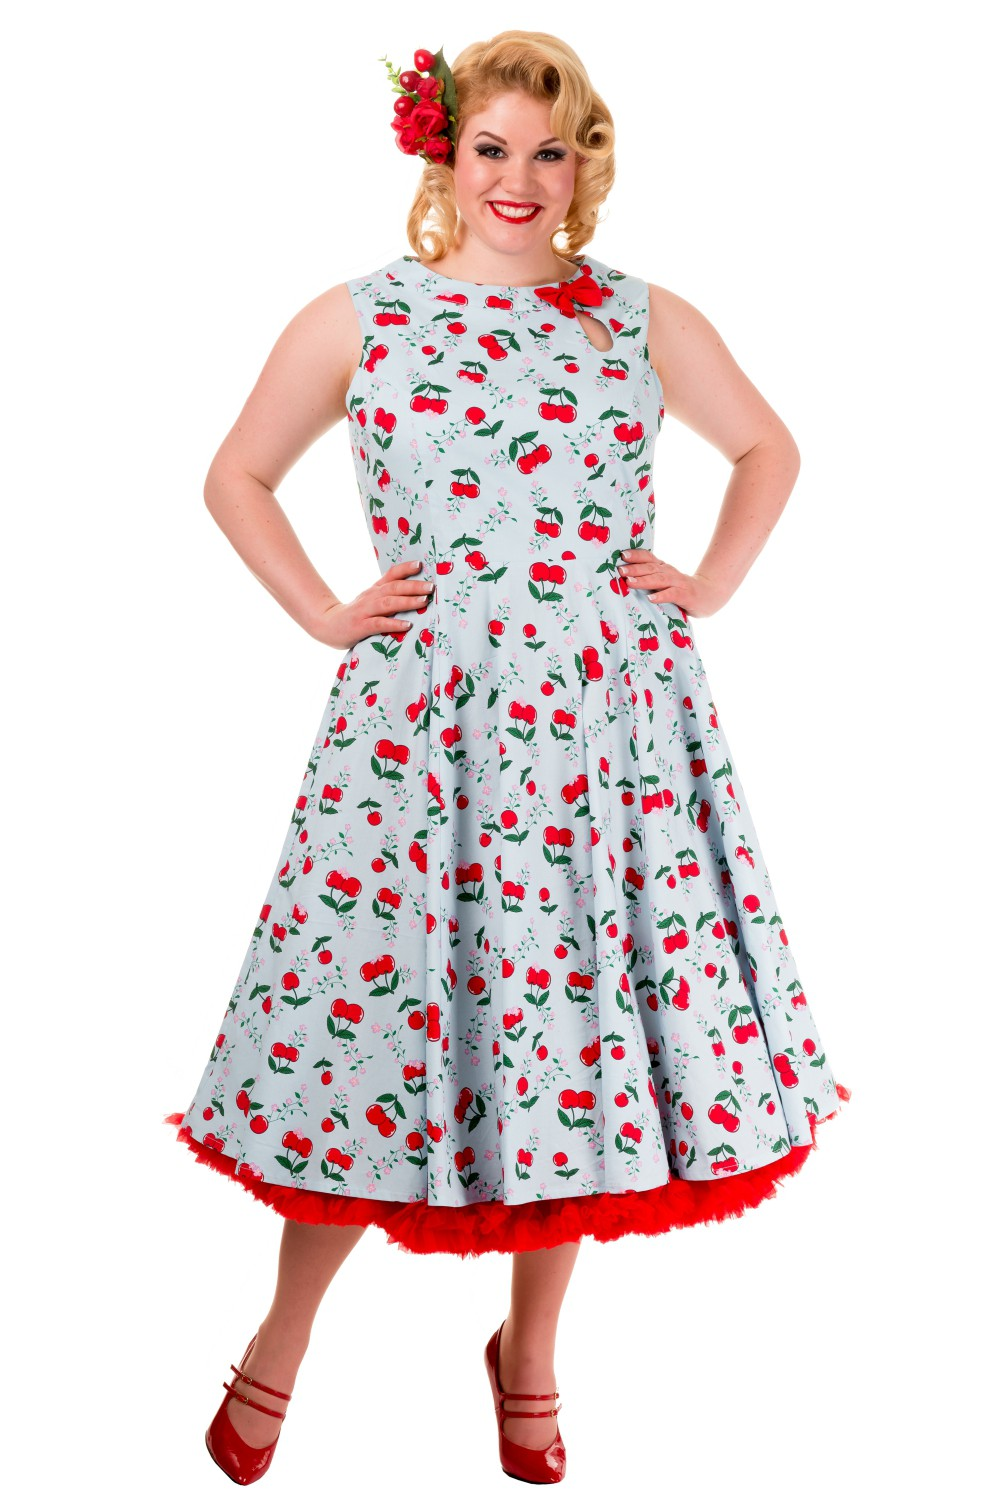 Banned Blindside 1950s Rockabilly Cherry Dress | Banned ...